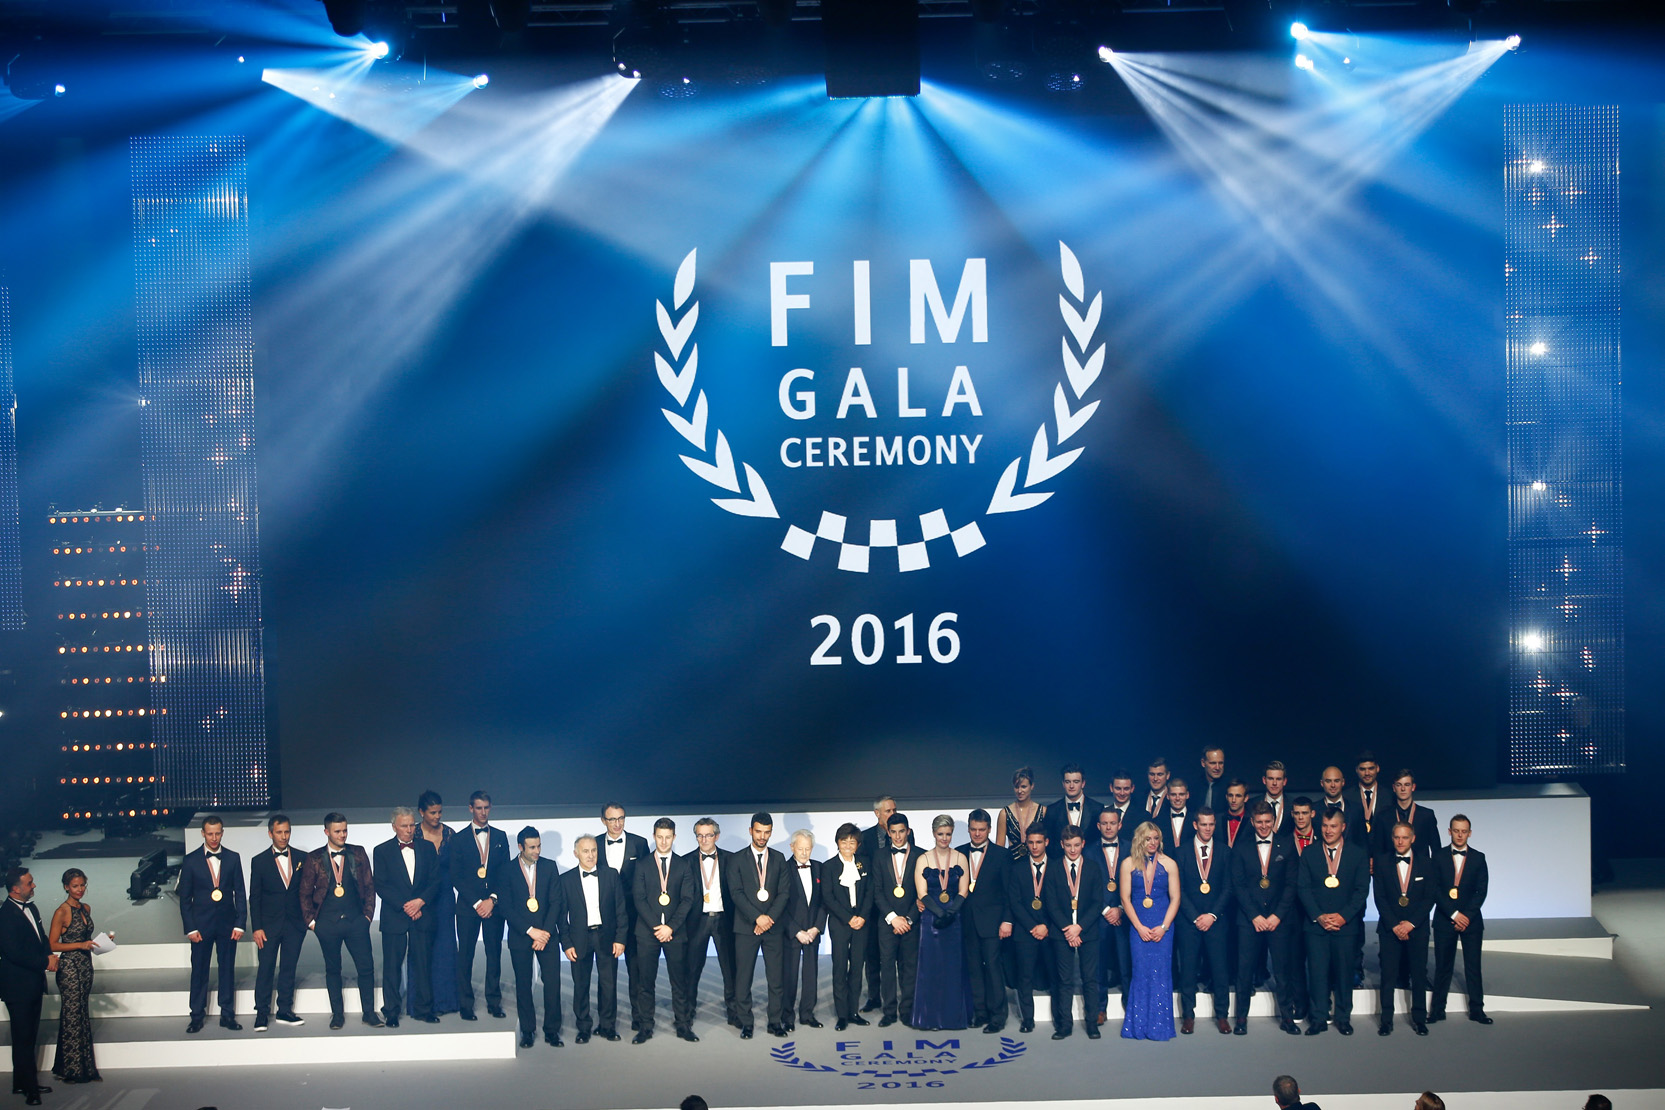 Fim,Gala,2016,Berlin,Ceremony